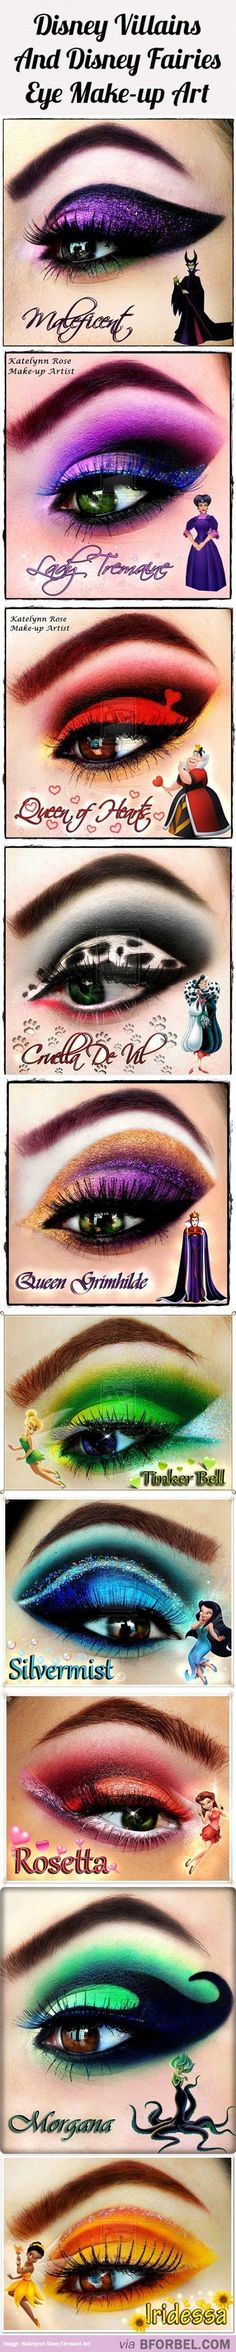 10 Disney Villains And Fairies Inspired Beautiful Eye Makeup...For more beauty, makeup, and nail art tips and ideas, go to www.sparkofallure.com